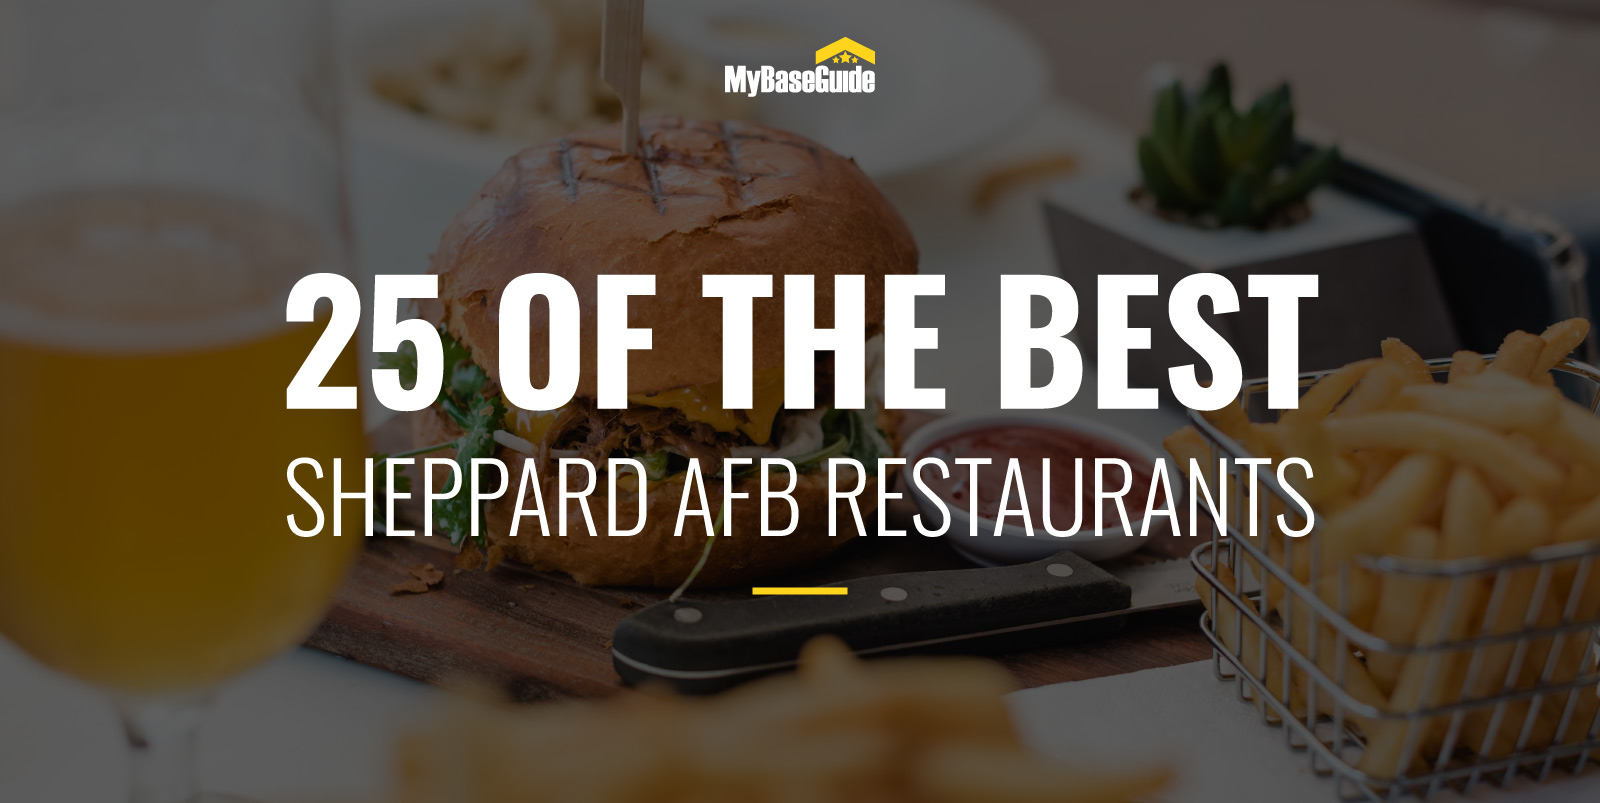 25 of the Best Sheppard AFB Restaurants